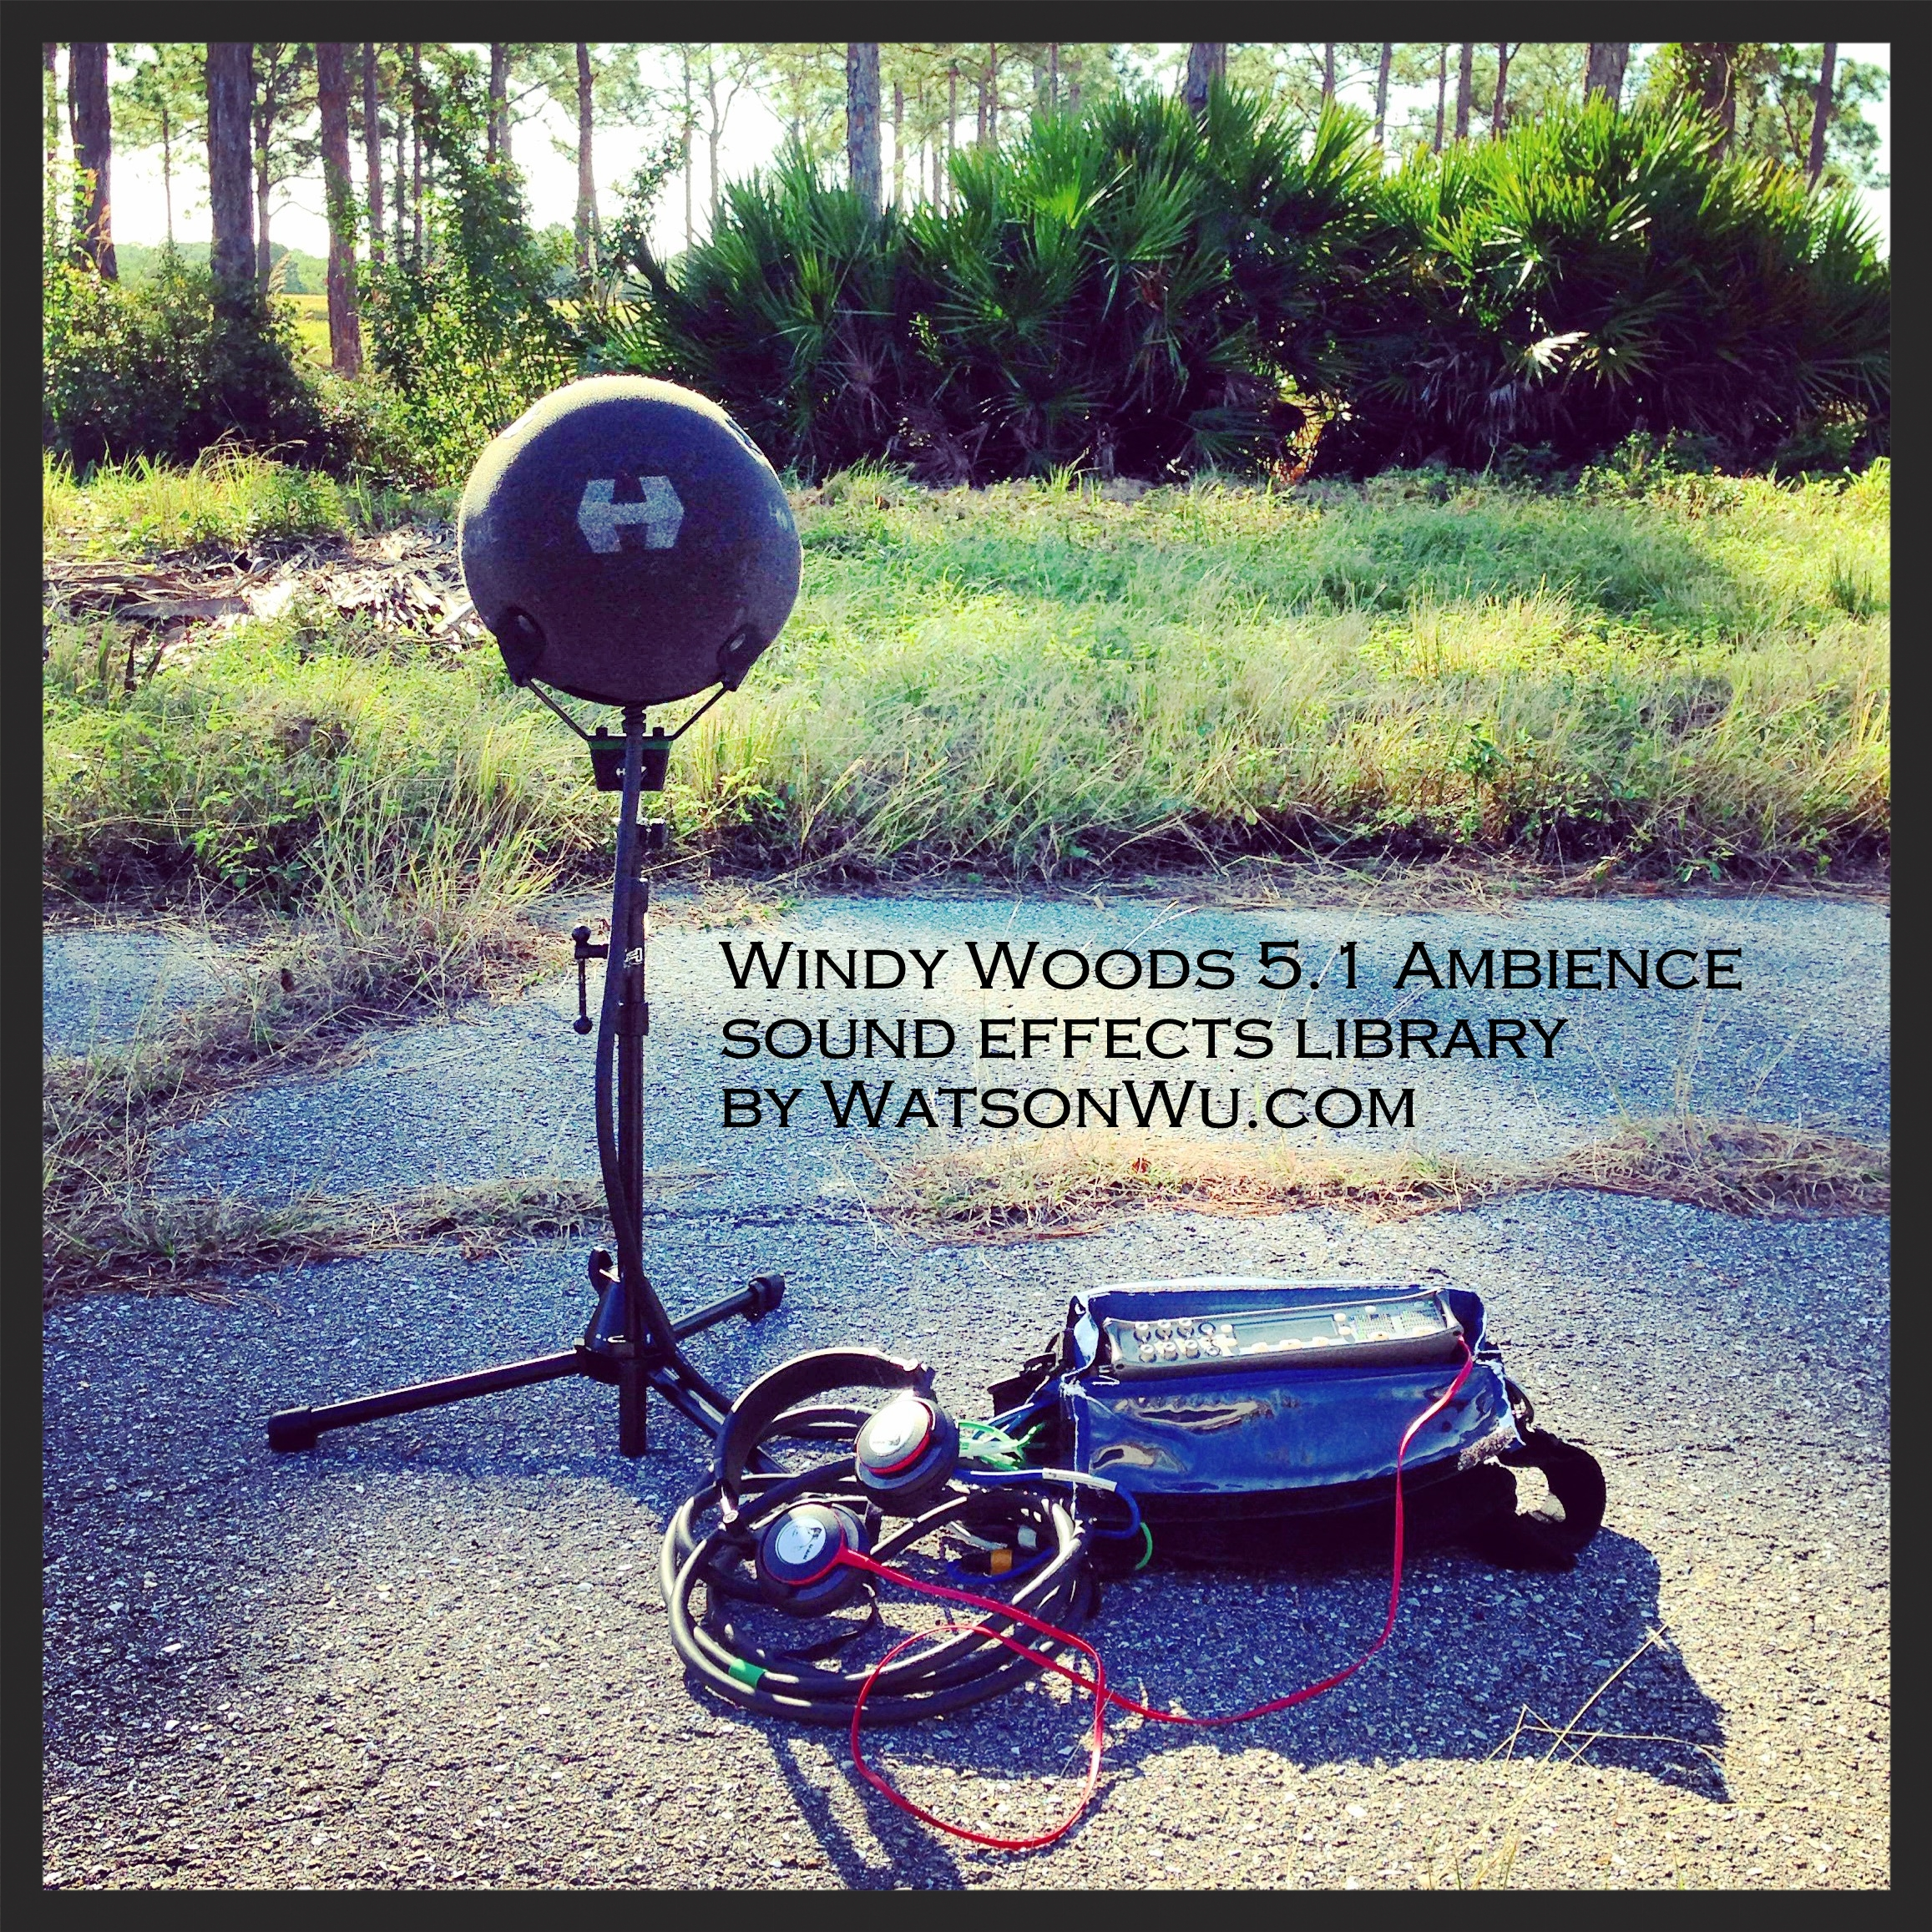 New Windy Woods ambience sound clips in 5.1 surround sound format!